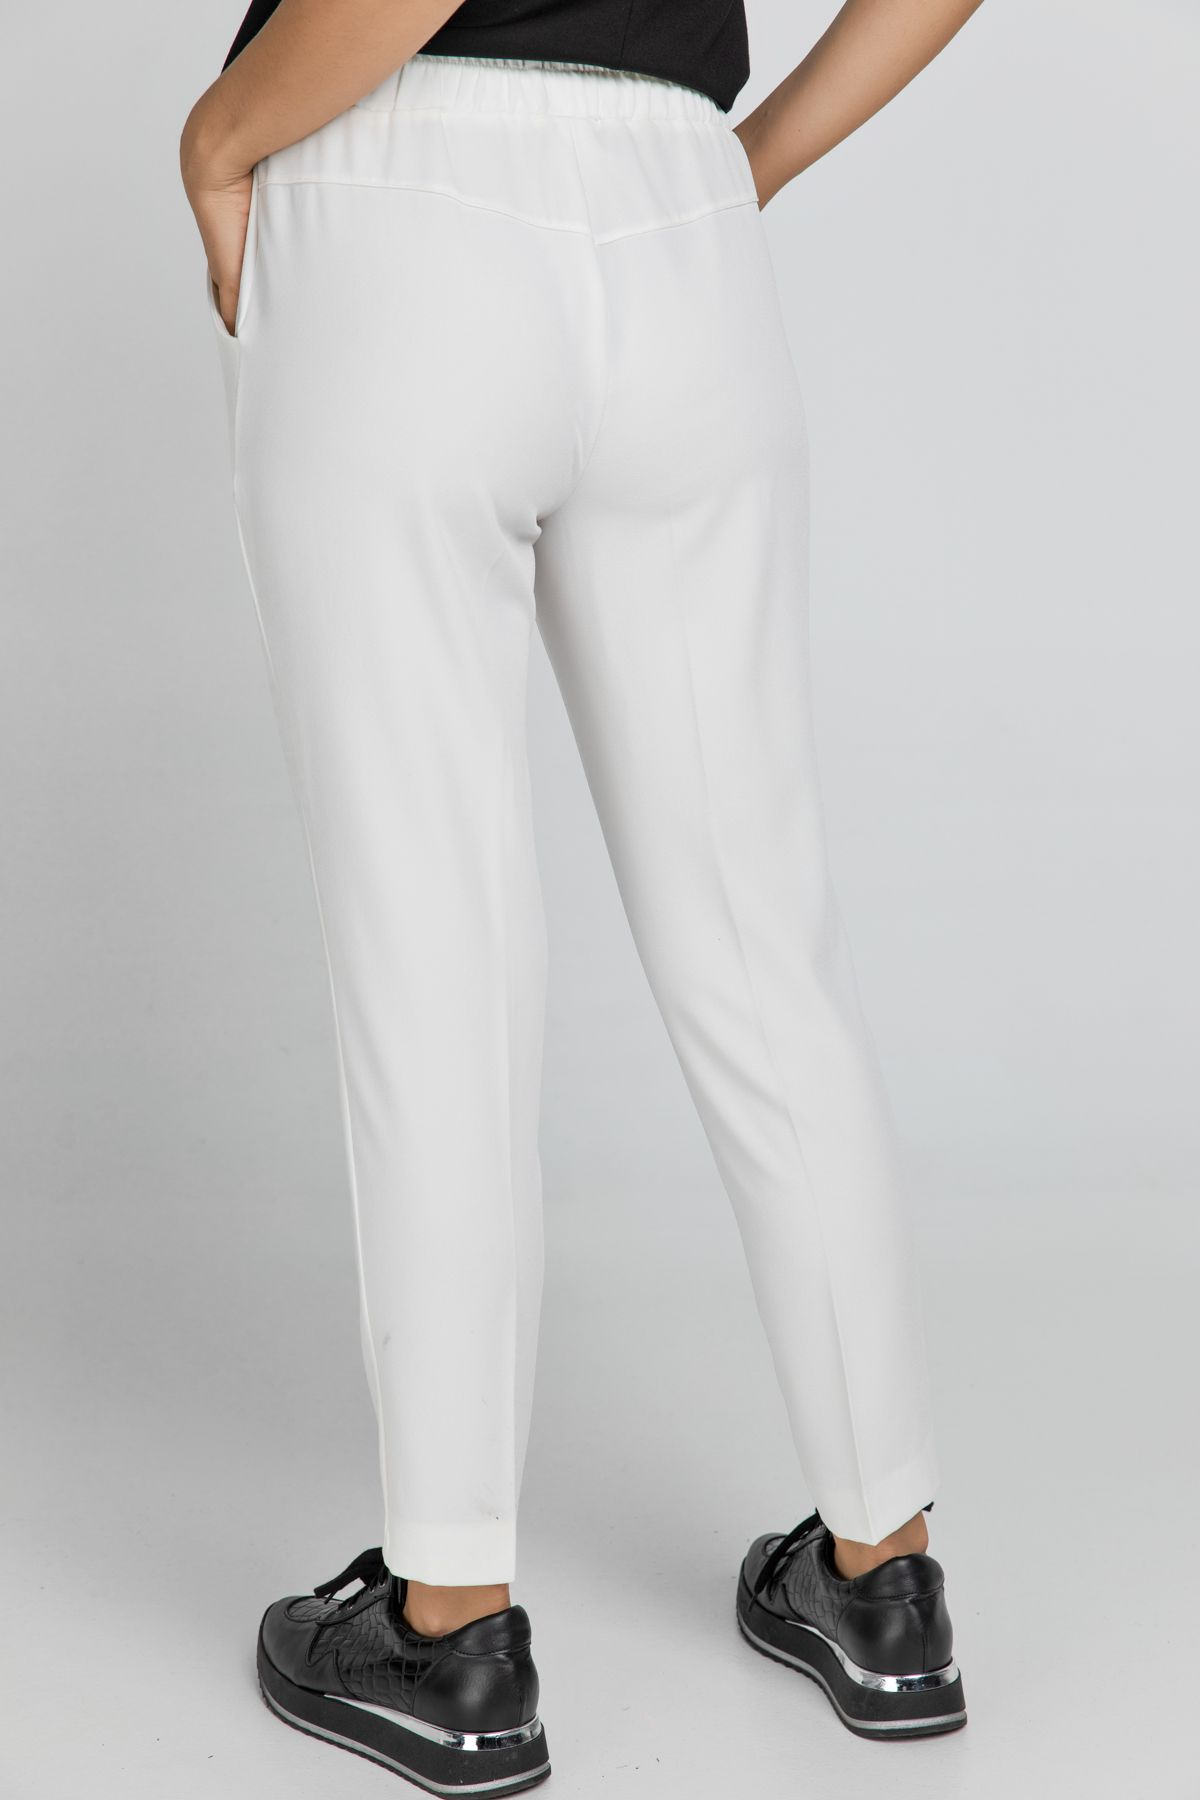 Ecru Crepe Pants by Conquista